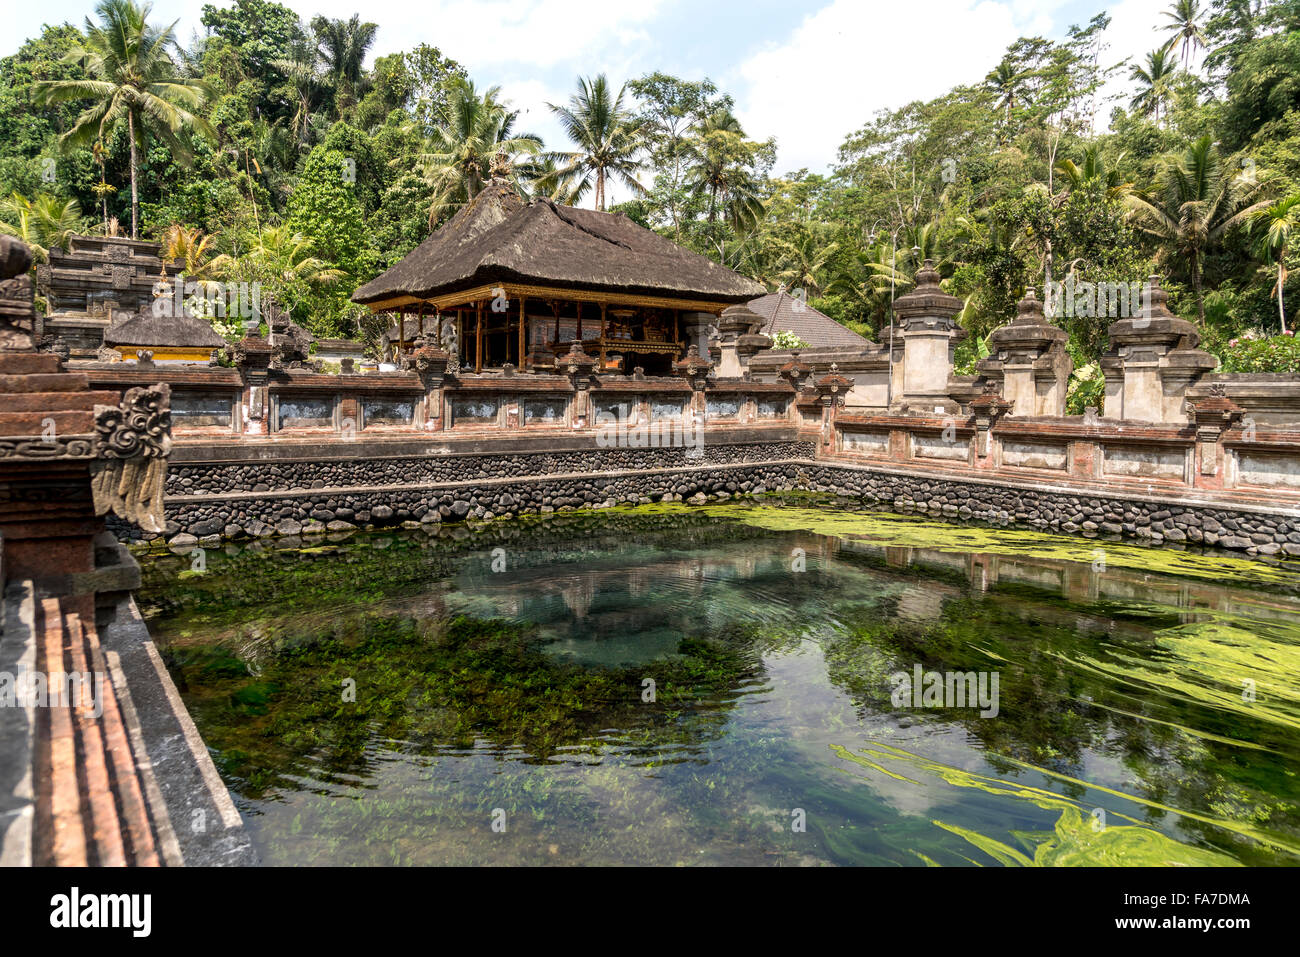 holy spring of the Hindu water temple Tirta Empul near Ubud, Bali, Indonesia - Stock Image